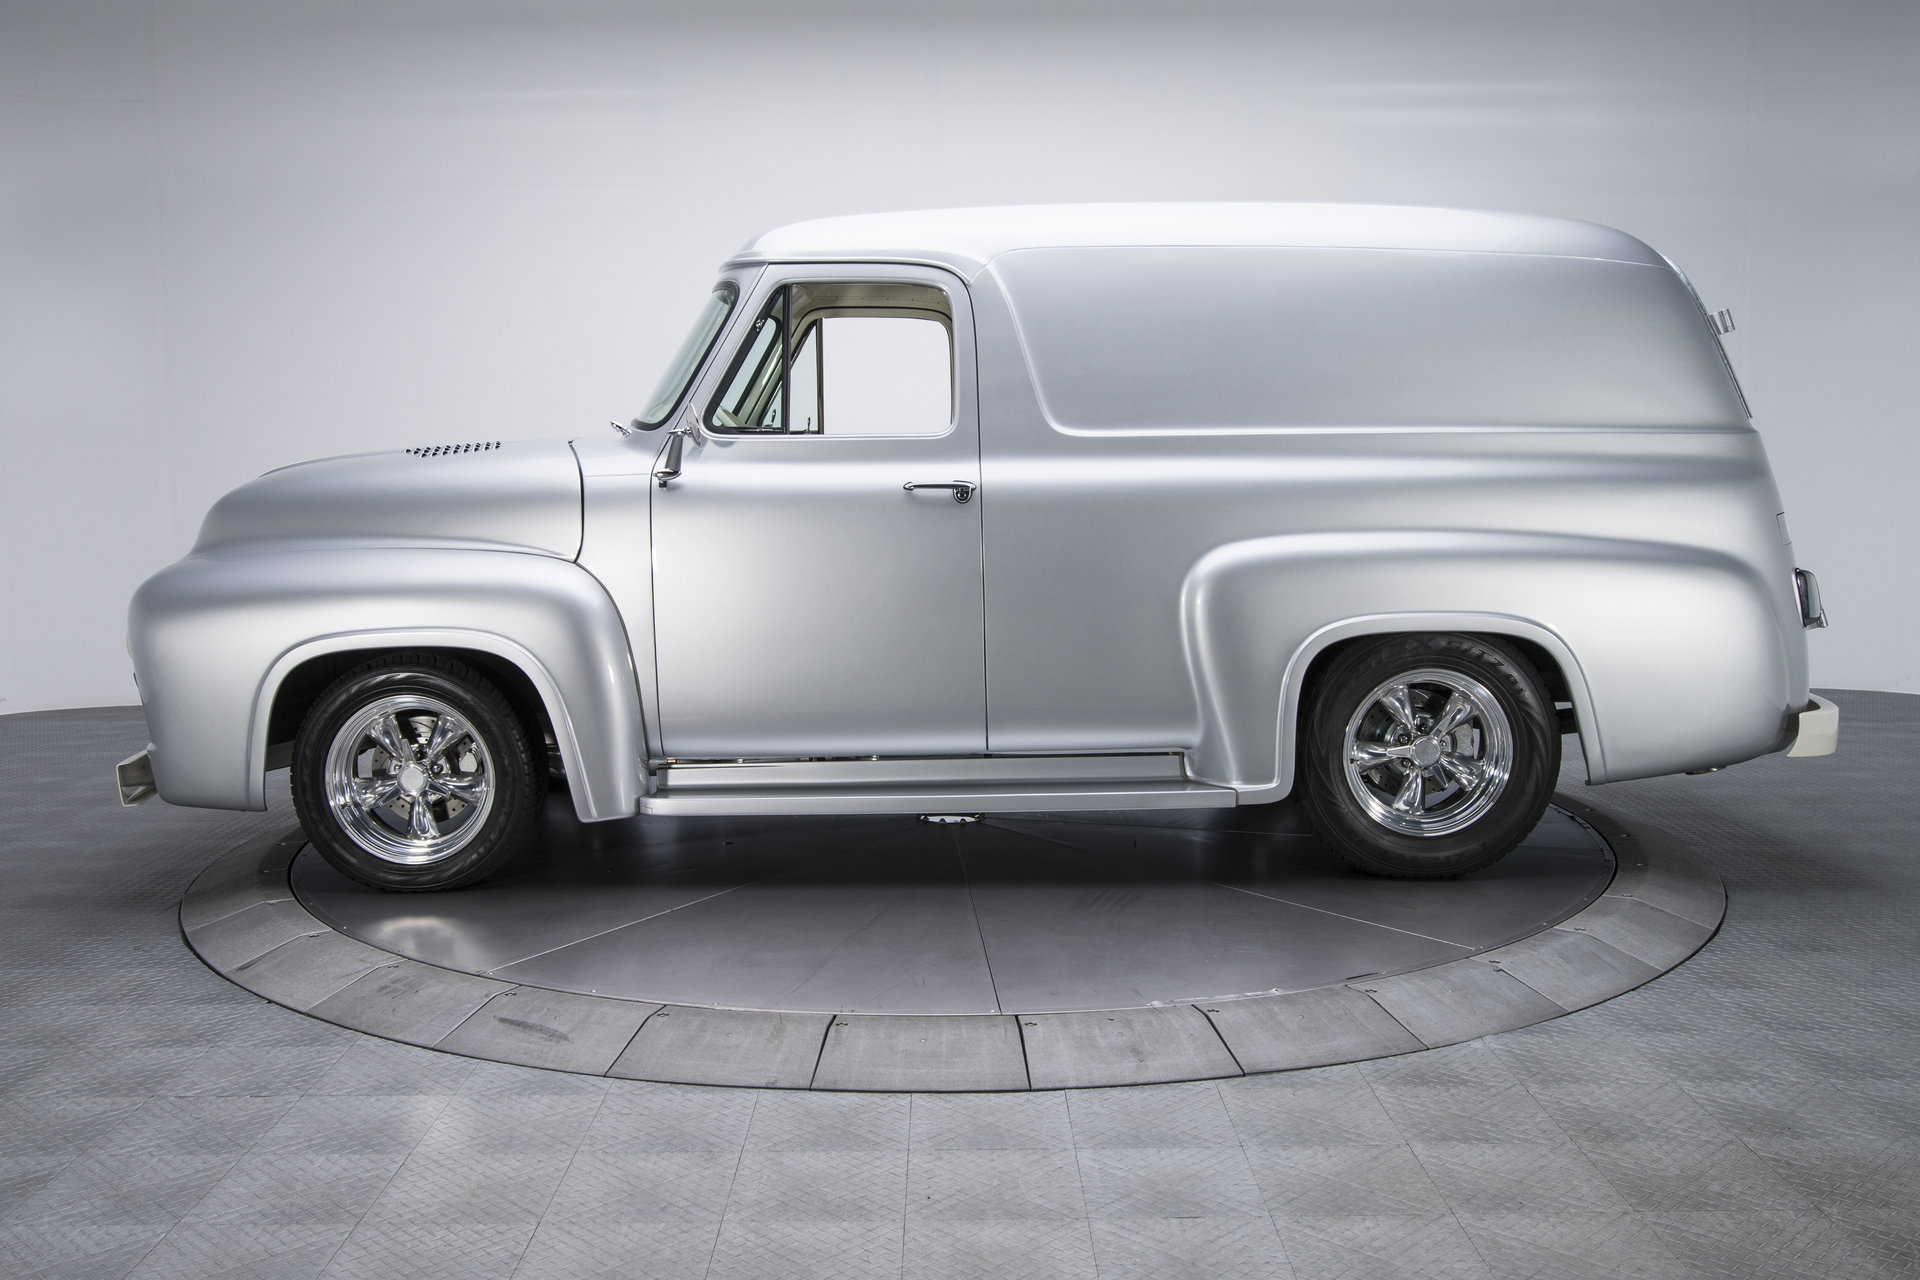 1955 Ford F100 Panel Truck For Sale 60370 Mcg Running Boards